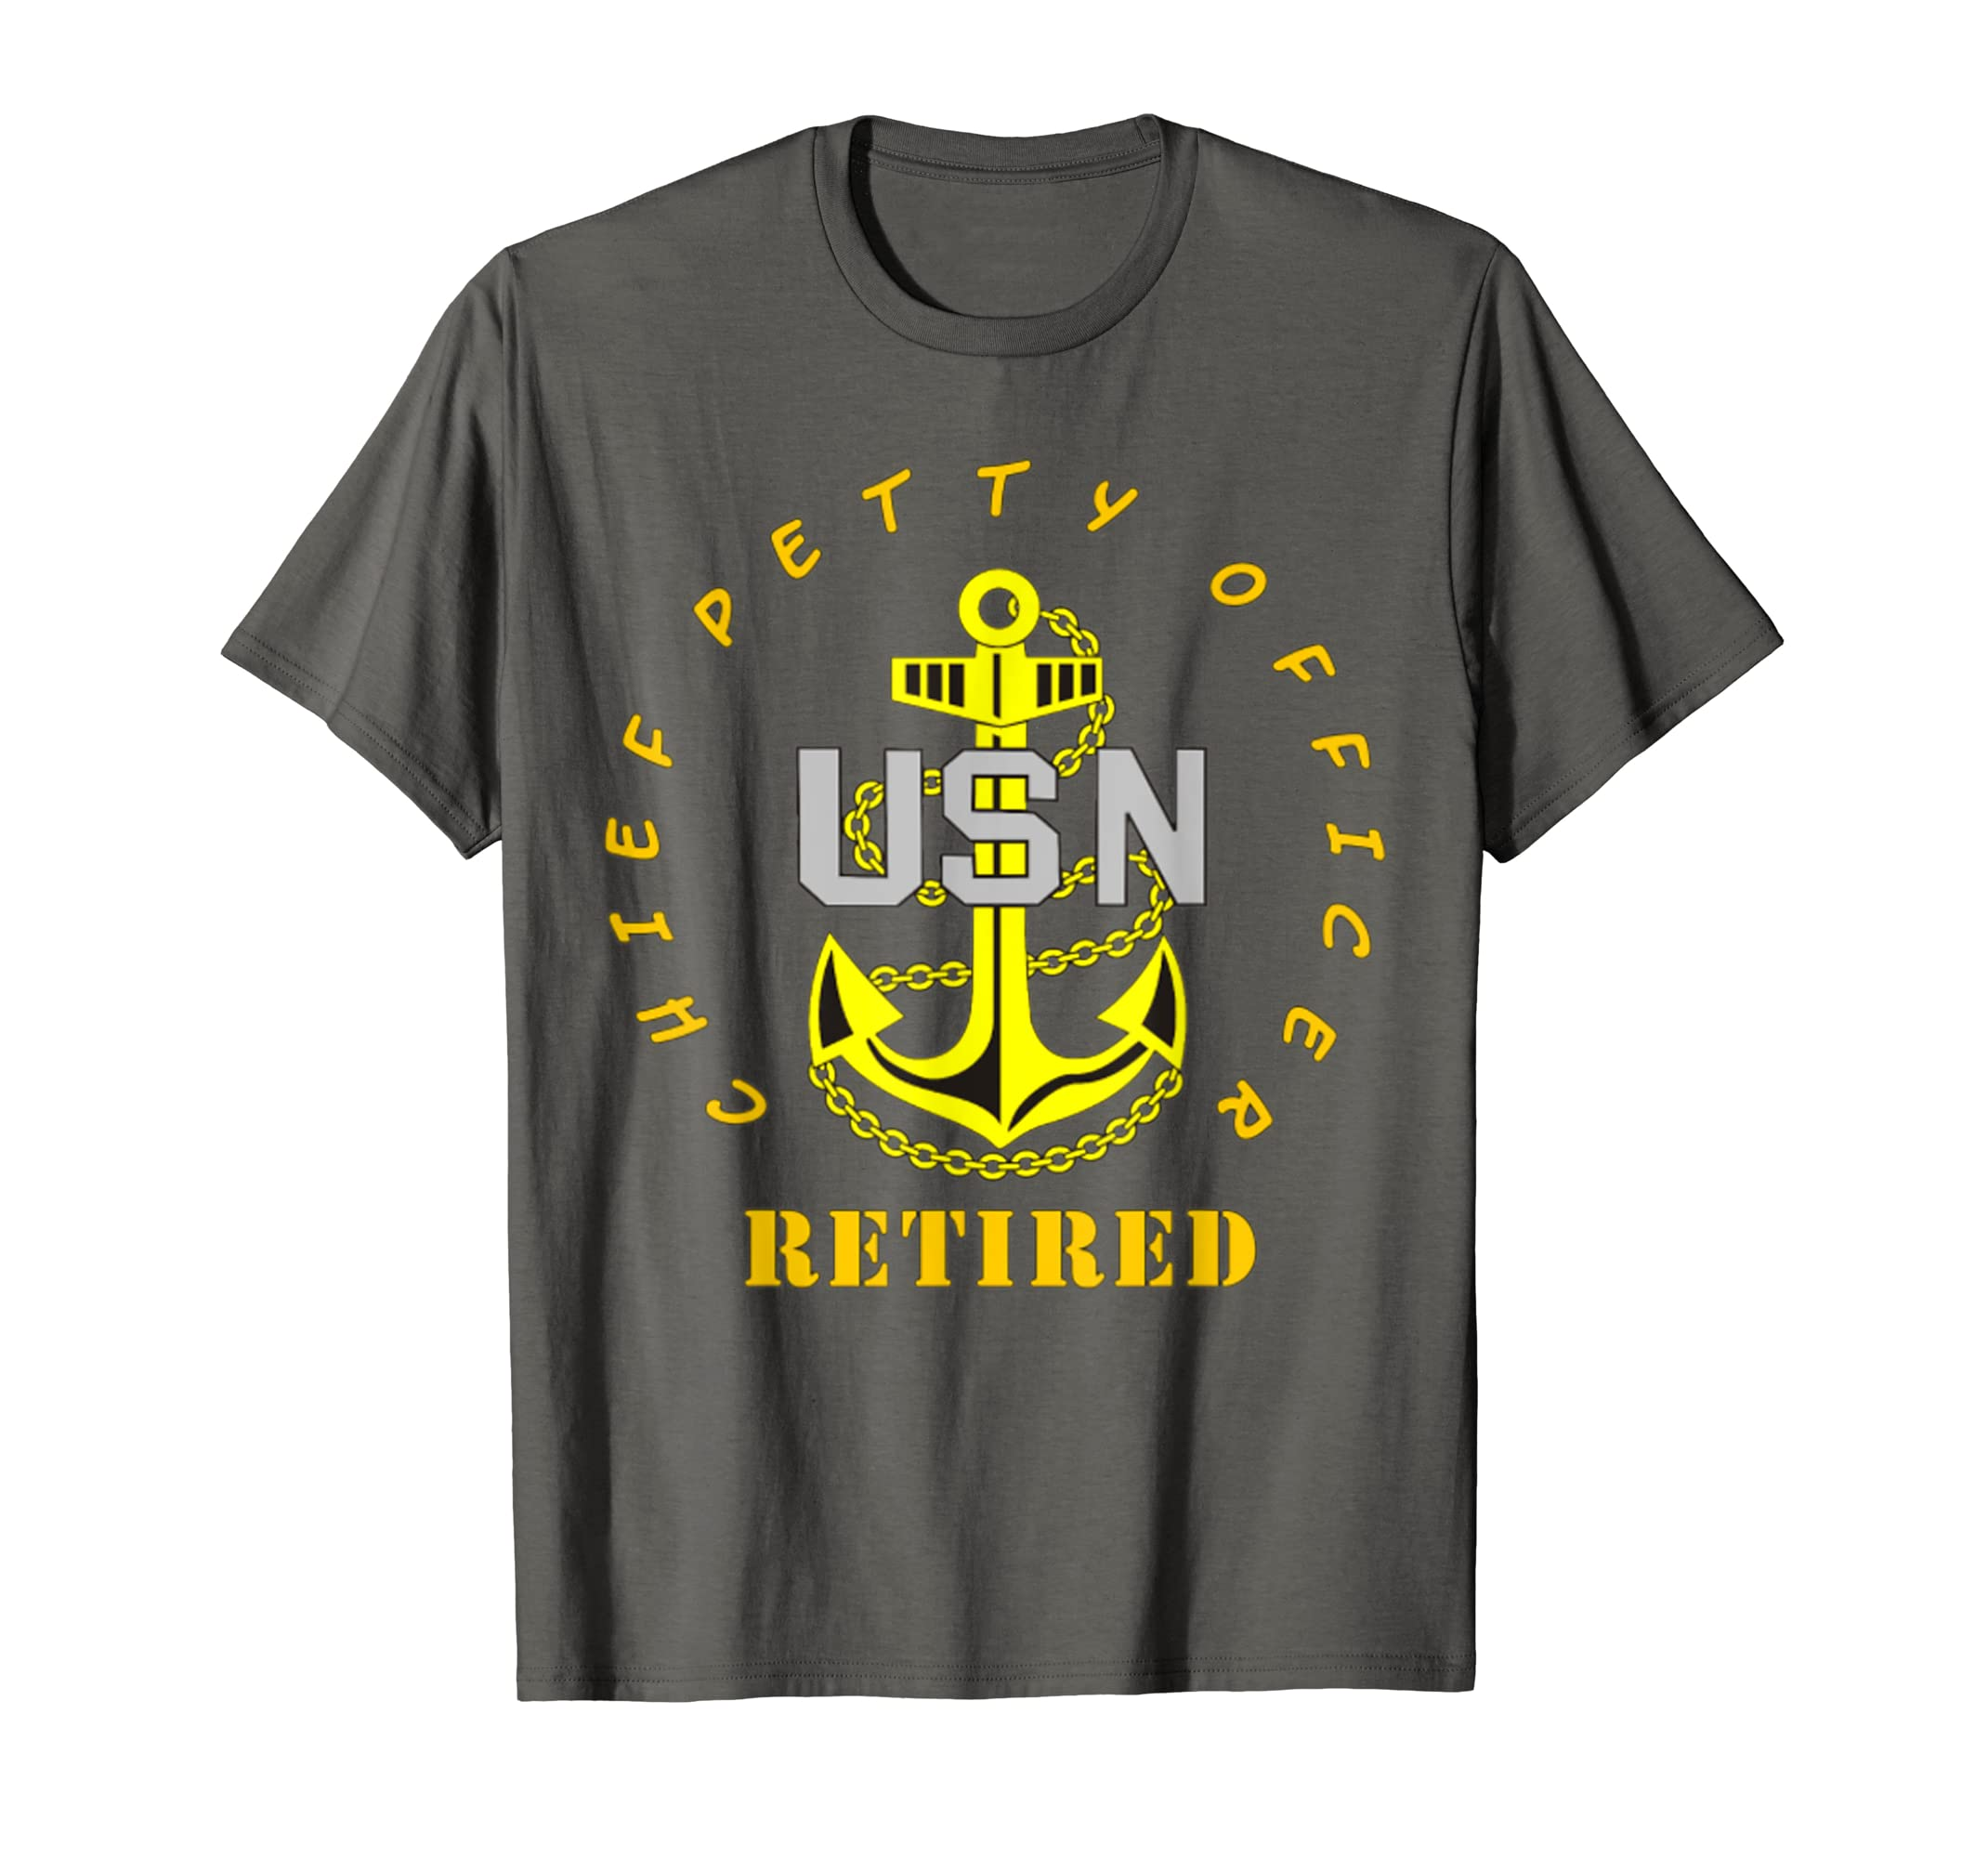 15d131d455b Amazon.com  US Navy - CPO Chief Petty Officer Retired Tshirt  Clothing